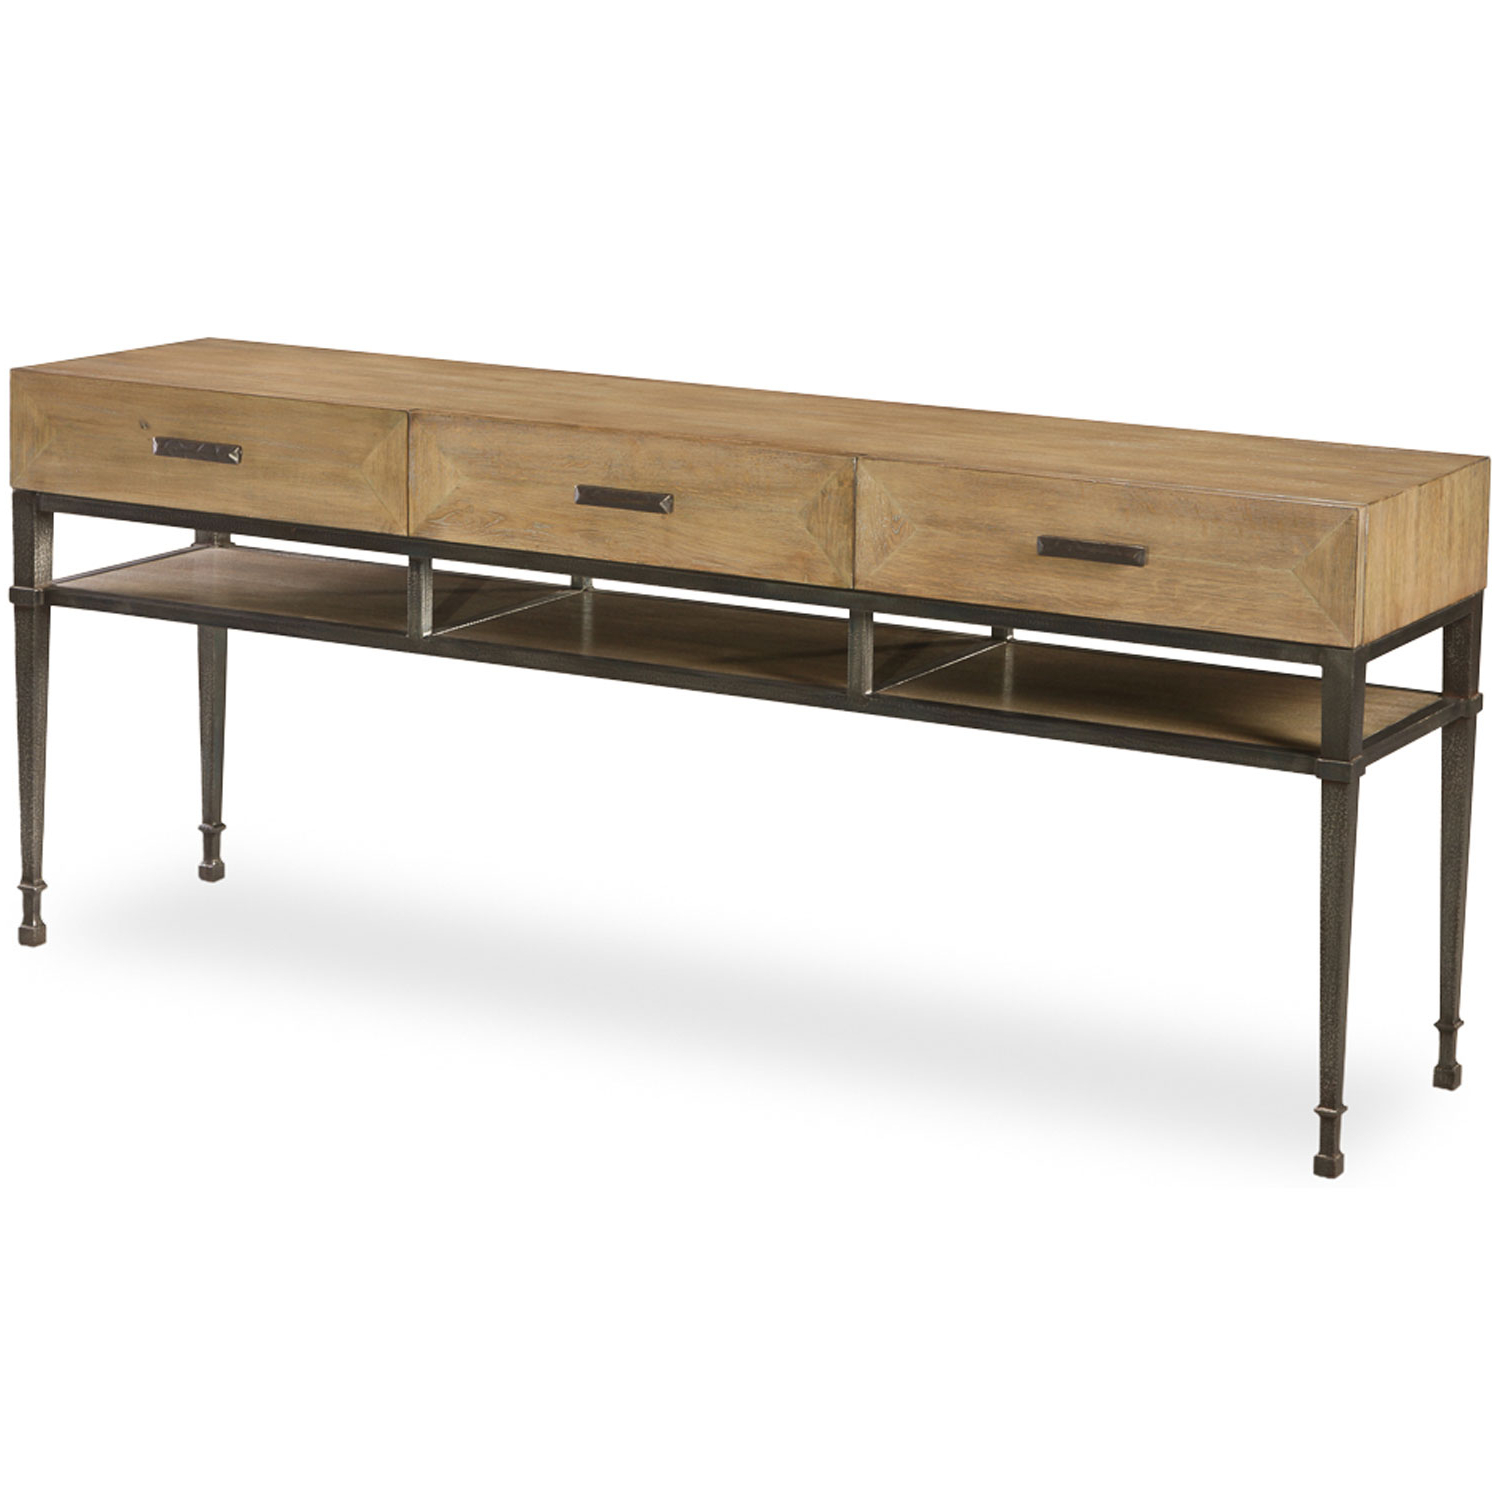 Sarreid Soho Media Console 77 135 | Bellacor With Regard To Gunmetal Media Console Tables (View 16 of 20)